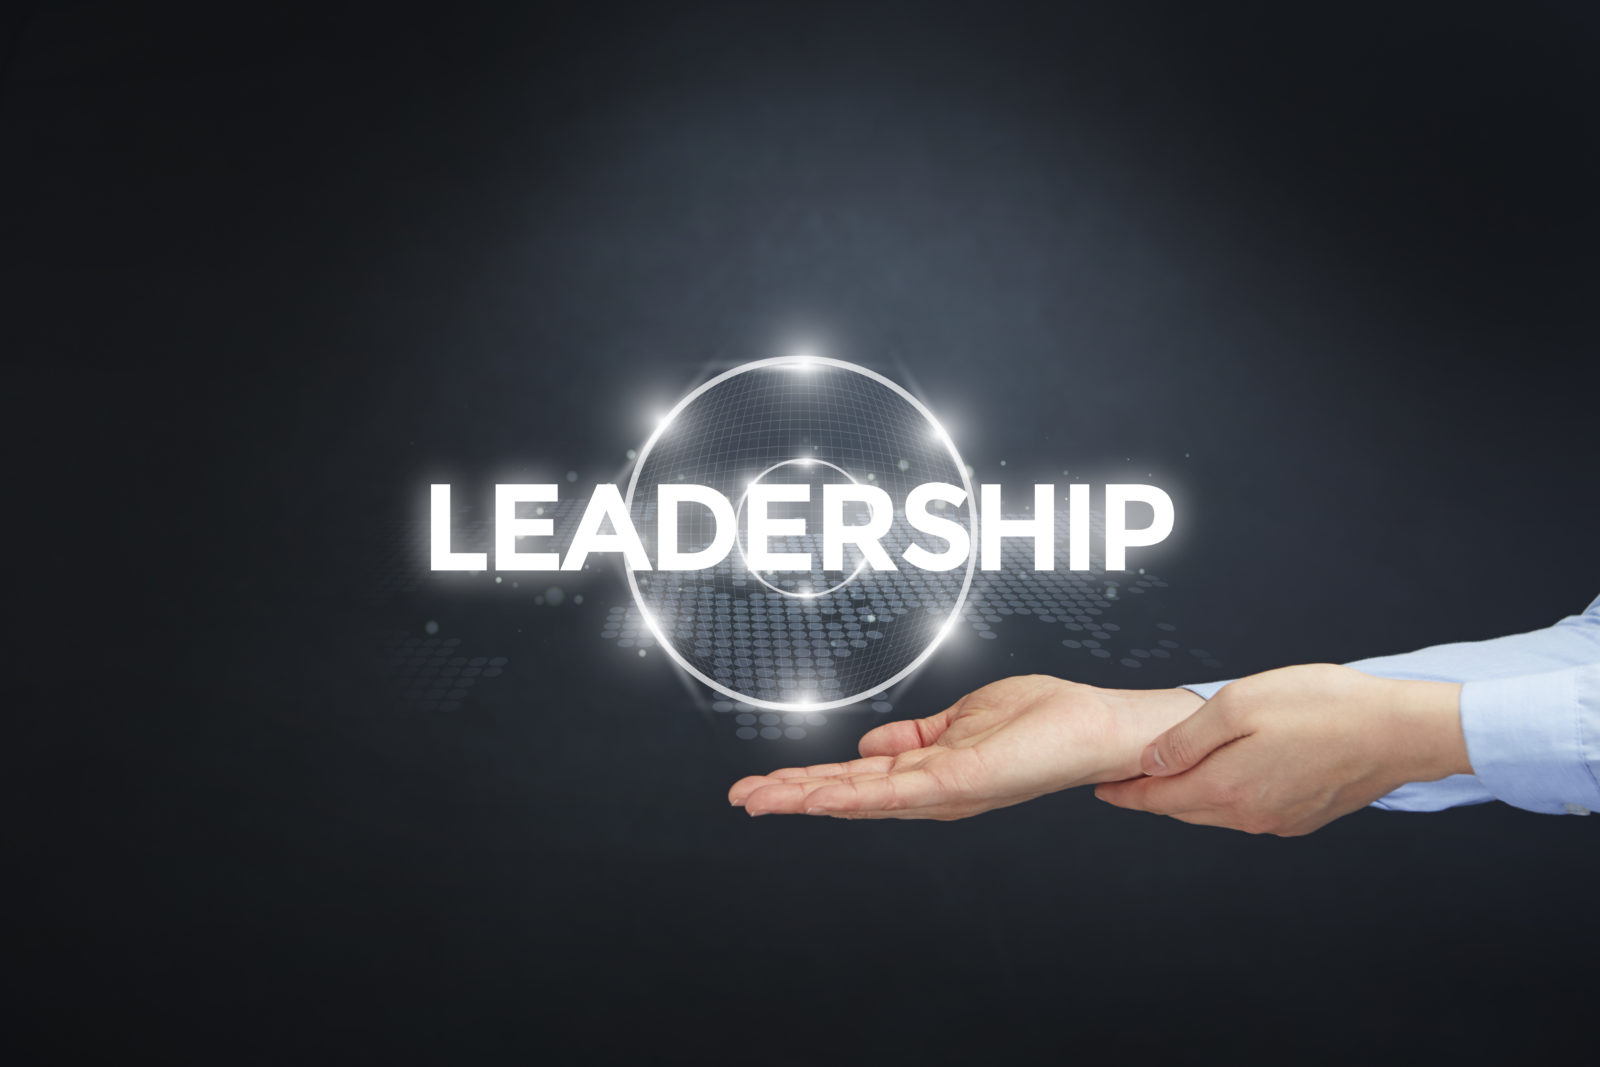 a leader in you